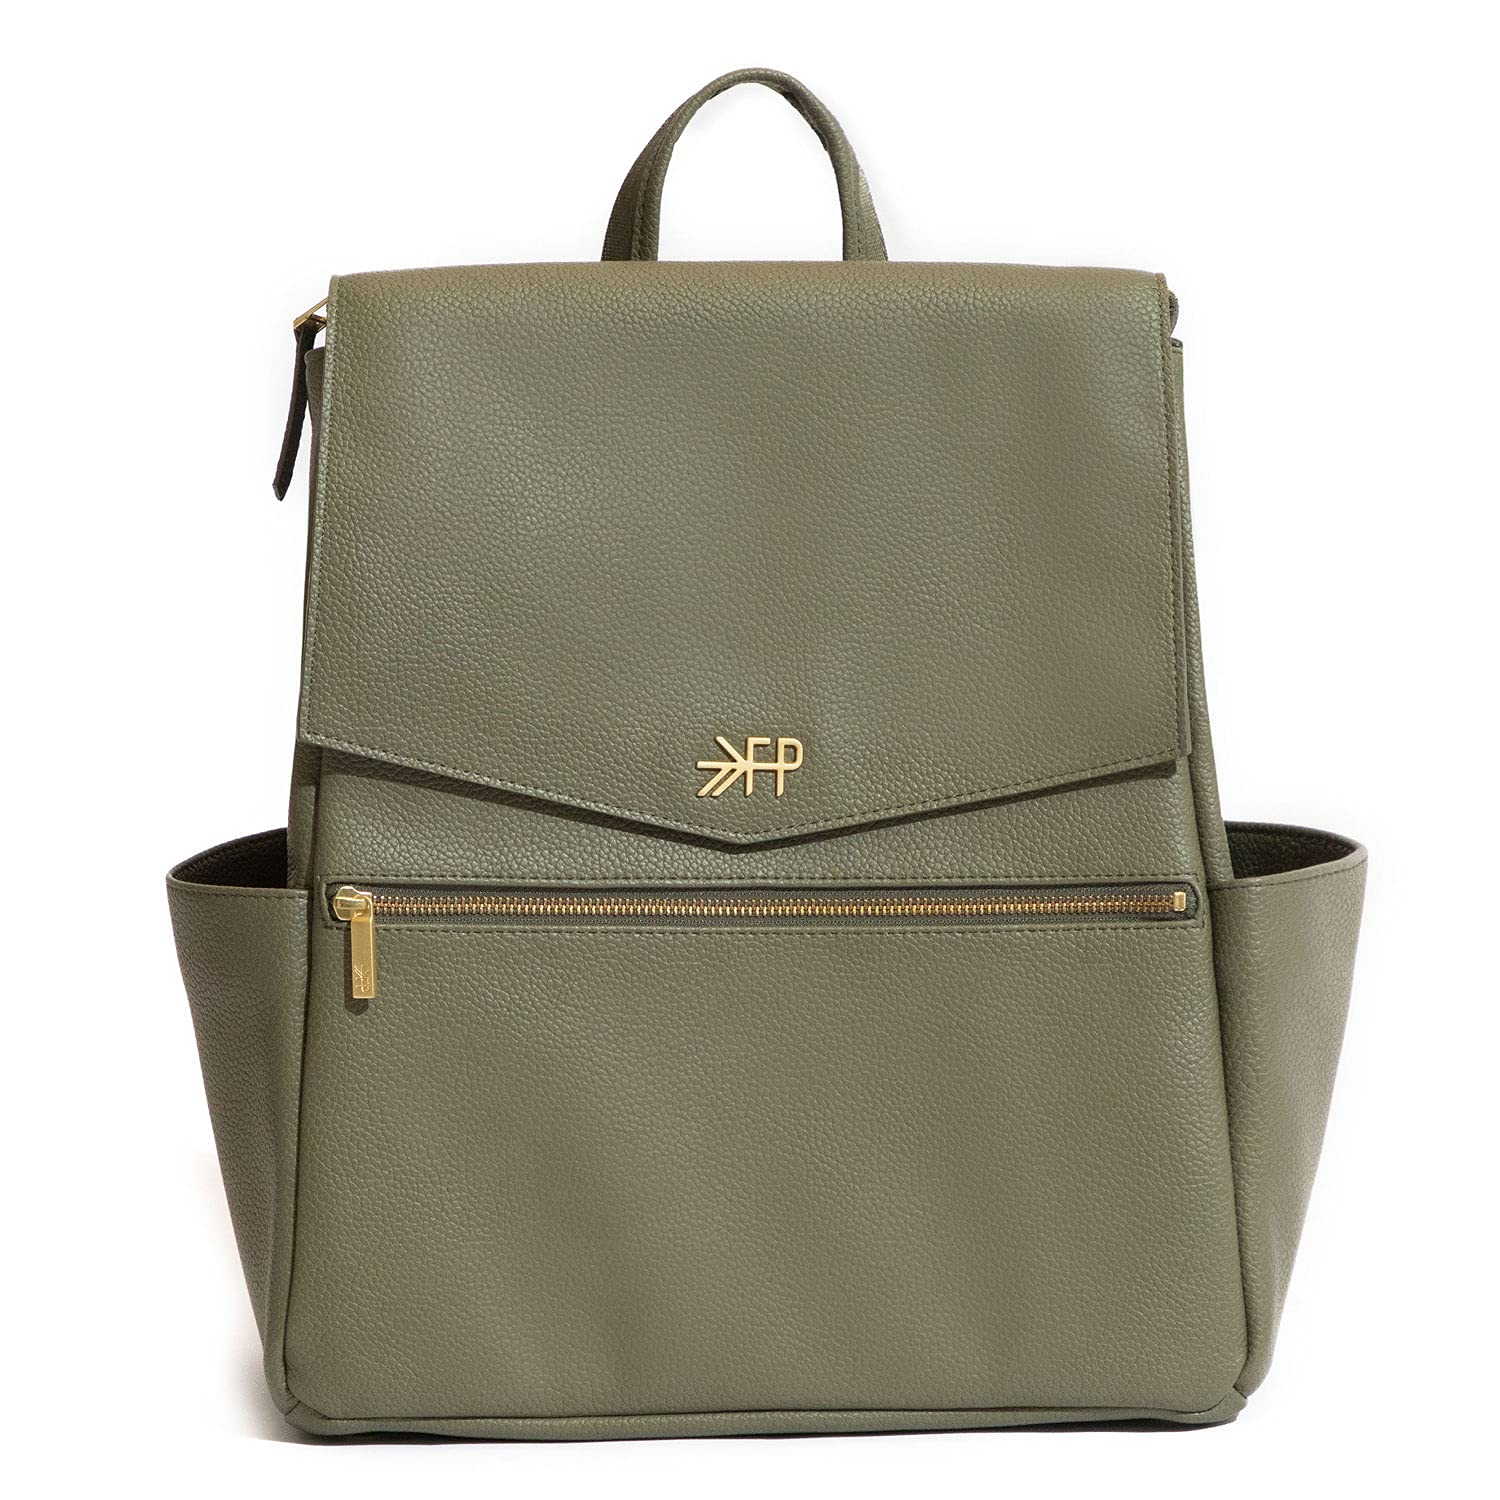 Freshly Picked - Convertible Classic Diaper Bag Backpack - Large Internal Storage 10 Pockets Wipeable Vegan Leather (Sage Green)